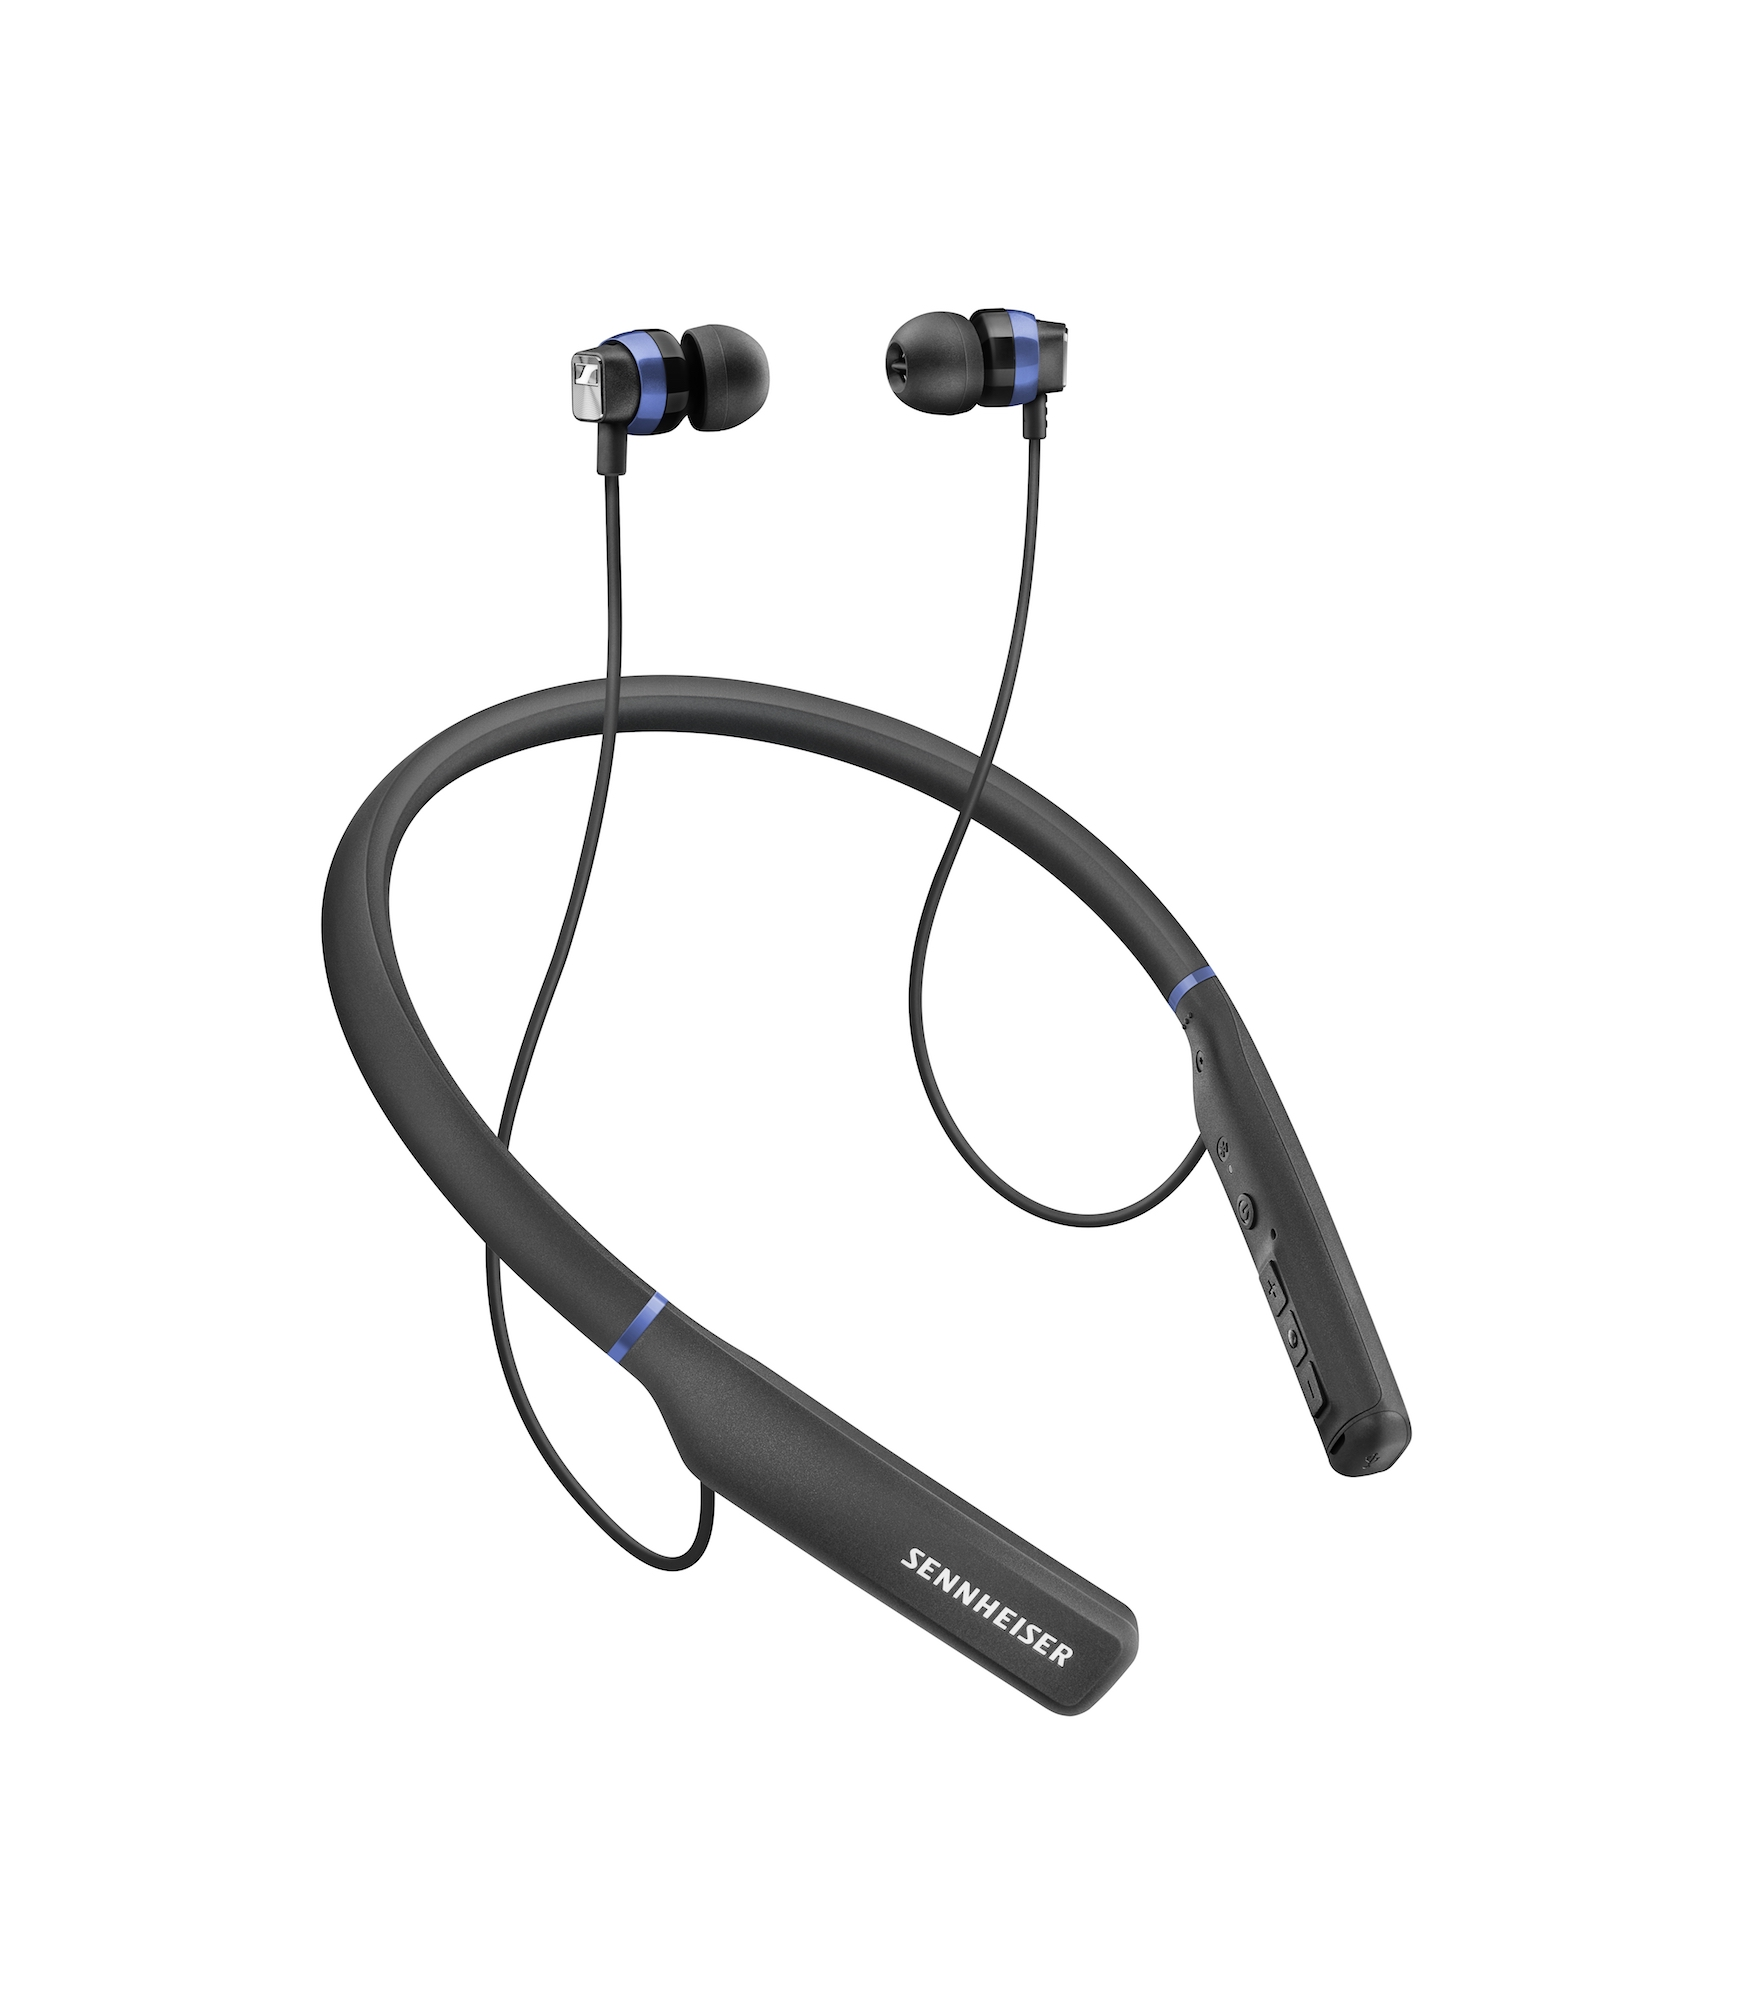 The Sennheiser wireless CX 7.00BT